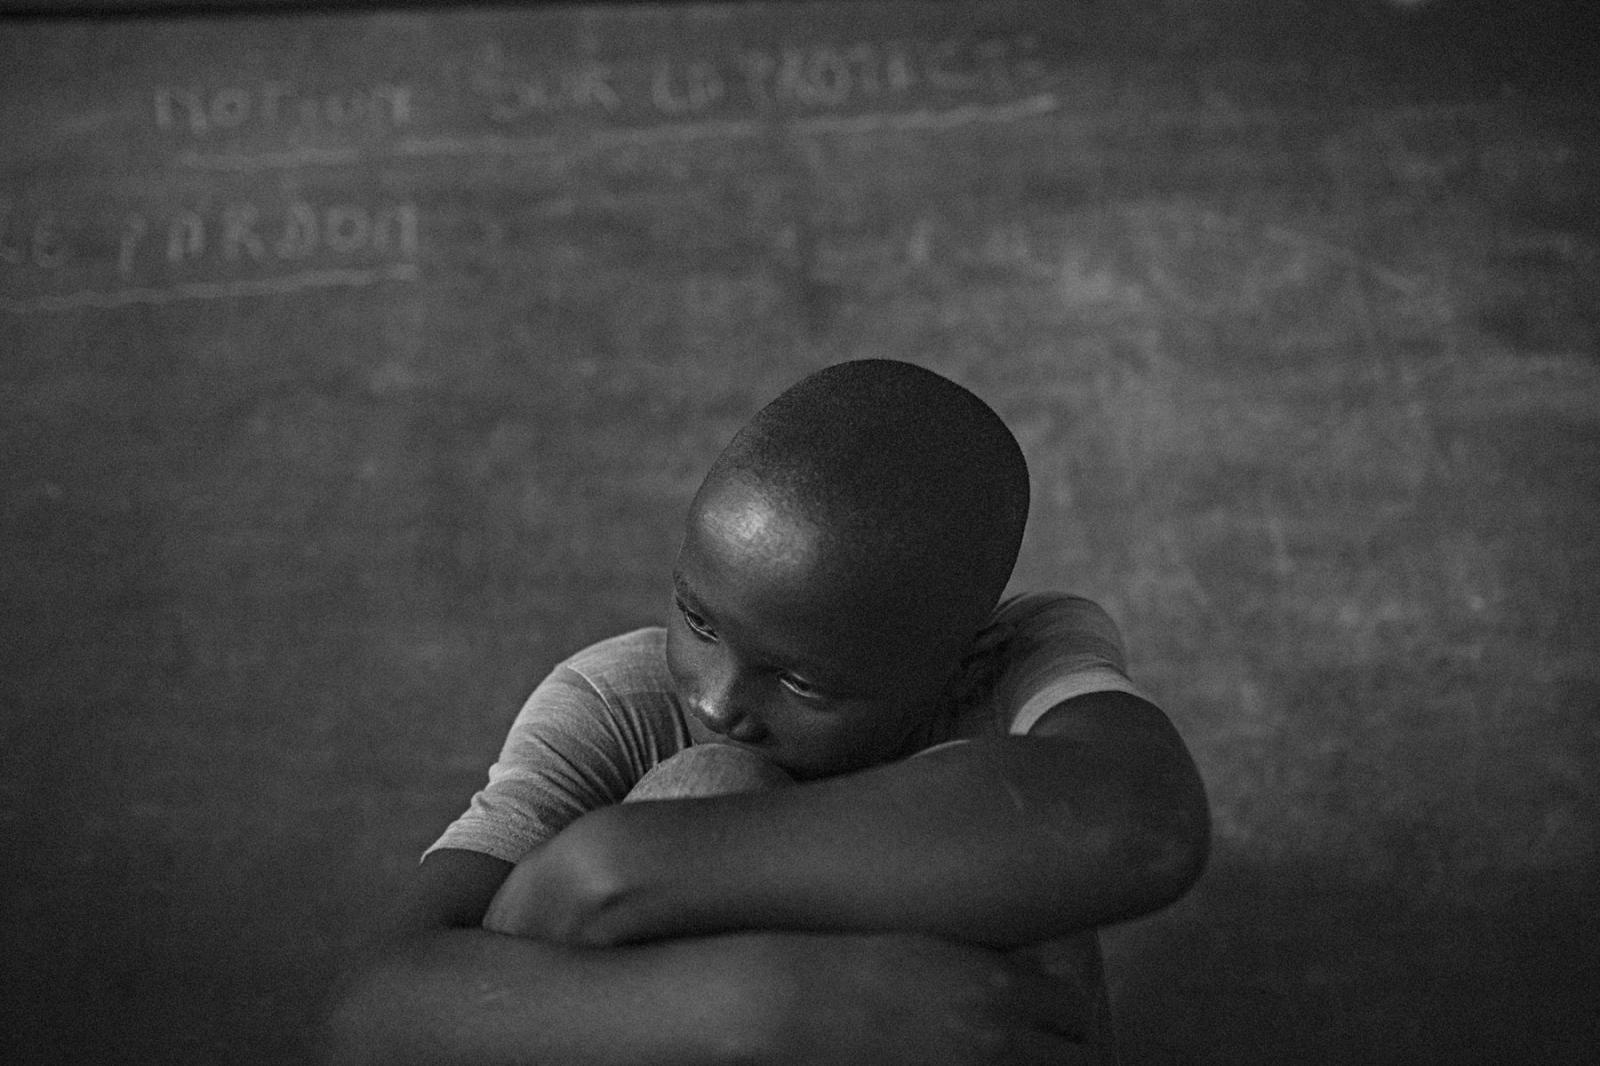 "Former FDLR child soldier Samuel, 15, sits in a makeshift classroom for a photo at UPDECO's reintegration center in Rutshuru, Eastern DRC, on Monday, July 21, 2014. Samuel spent two years in the Hutu-dominated militia group and left after realizing that it ""was not a good team,"" he said. He wishes to return to school and has fortunately reconnected with his family, but is currently staying with a transit family during the three-month reintegration period many child soldiers experience before returning home."